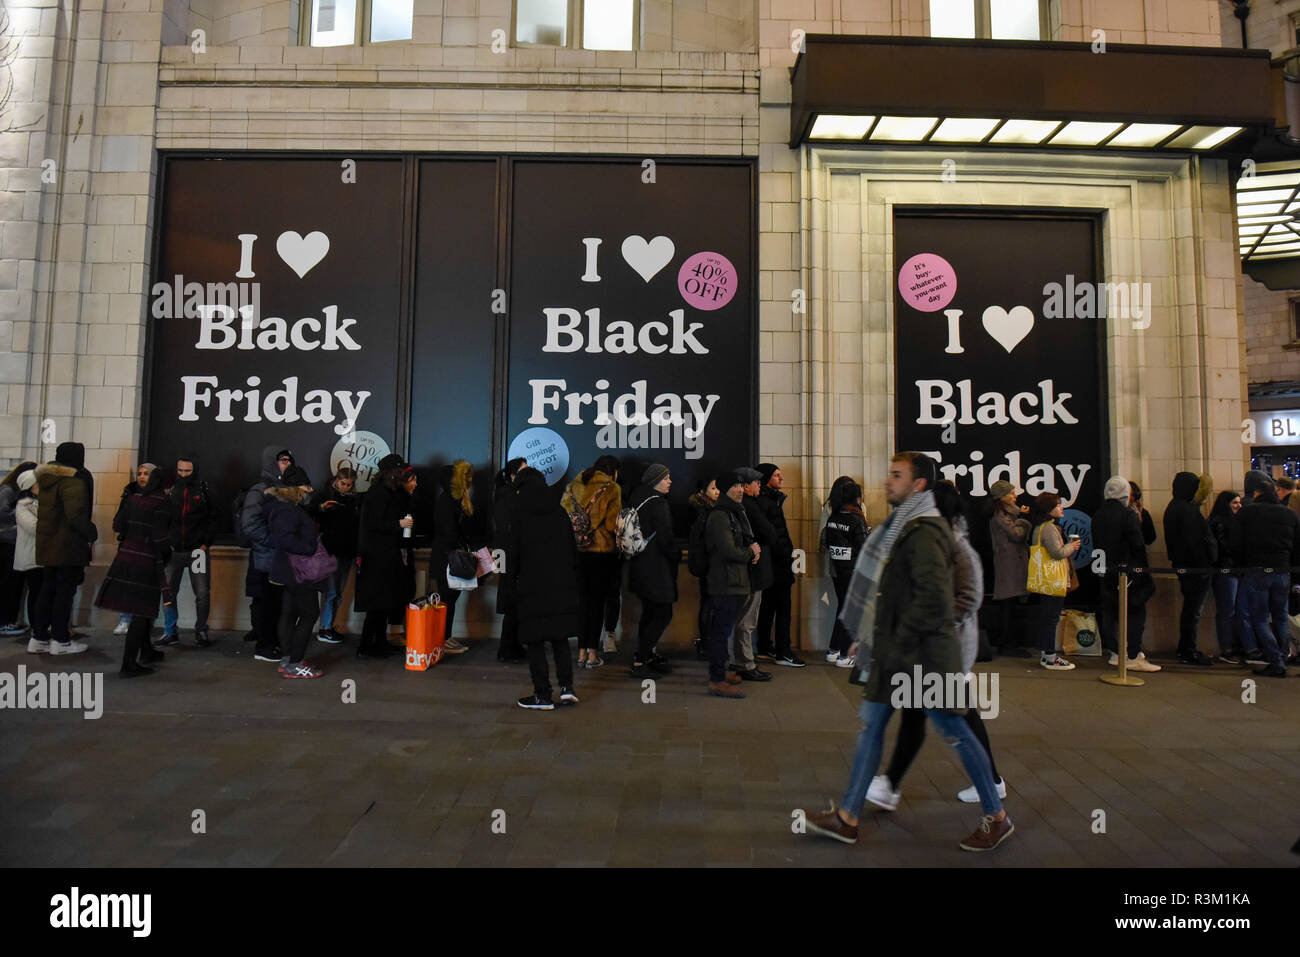 Black Friday Uk Queue High Resolution Stock Photography And Images Alamy